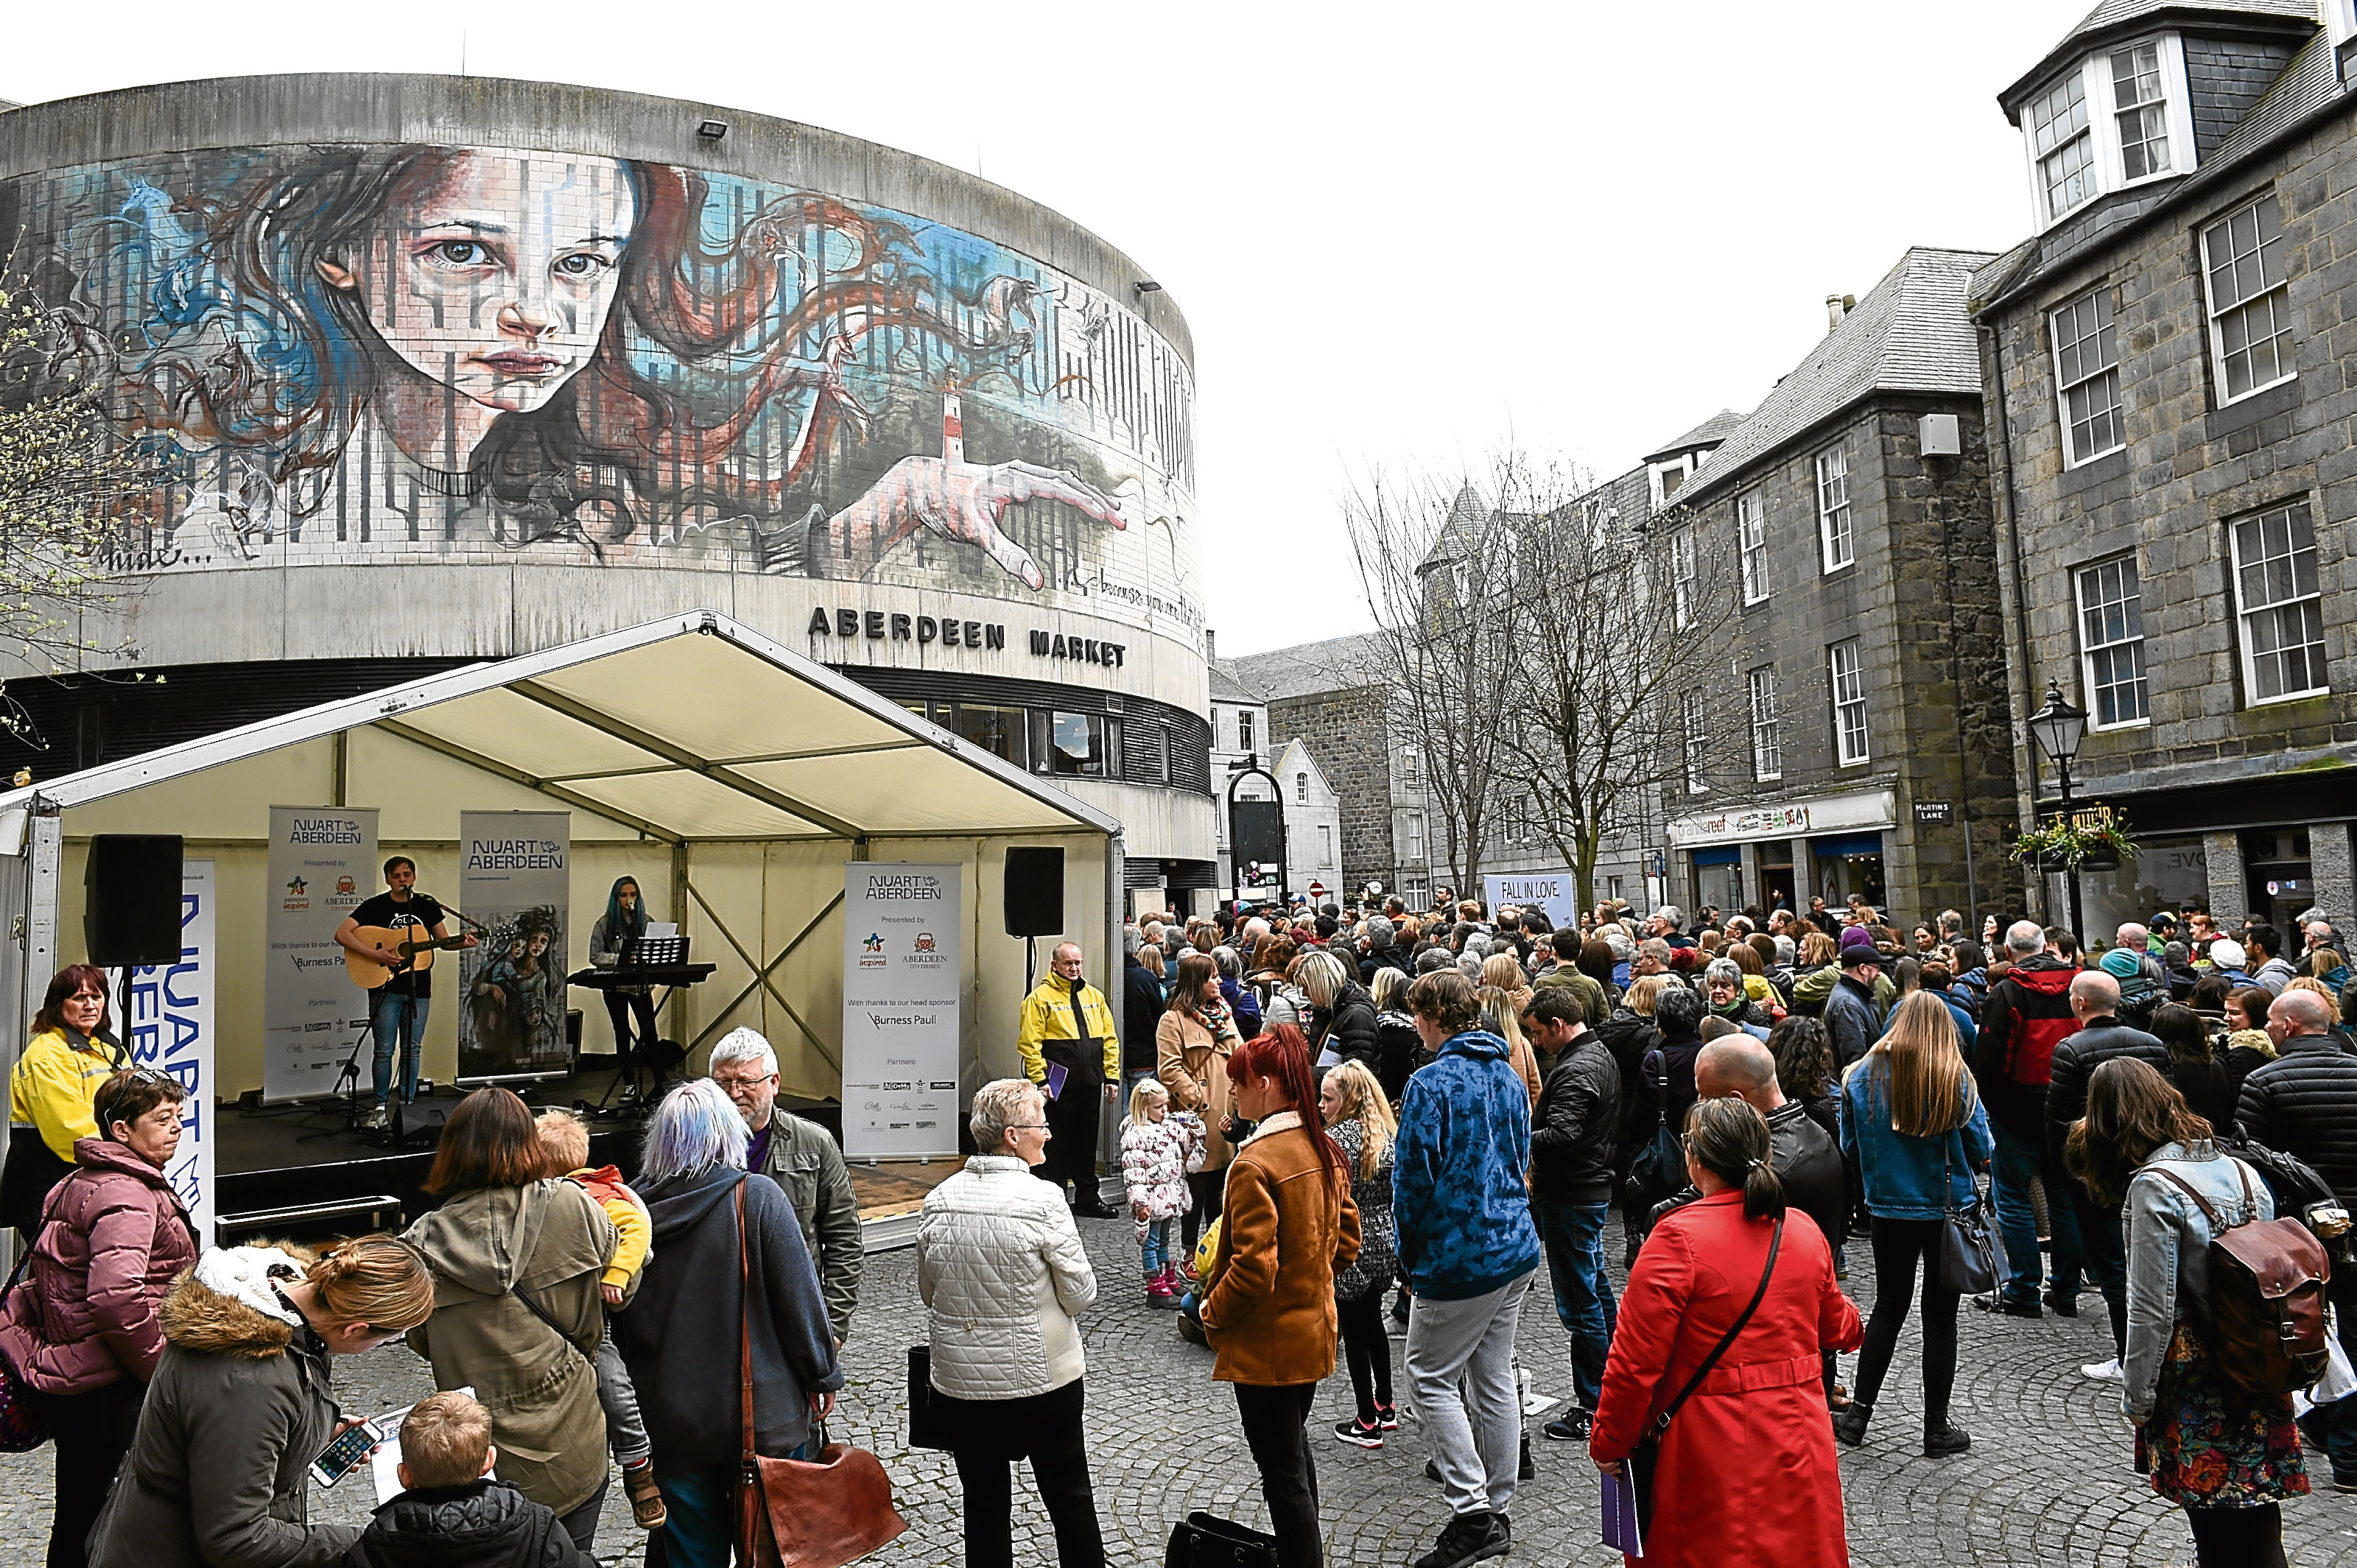 Crowds stand in front of one of the Nuart Festival art works.